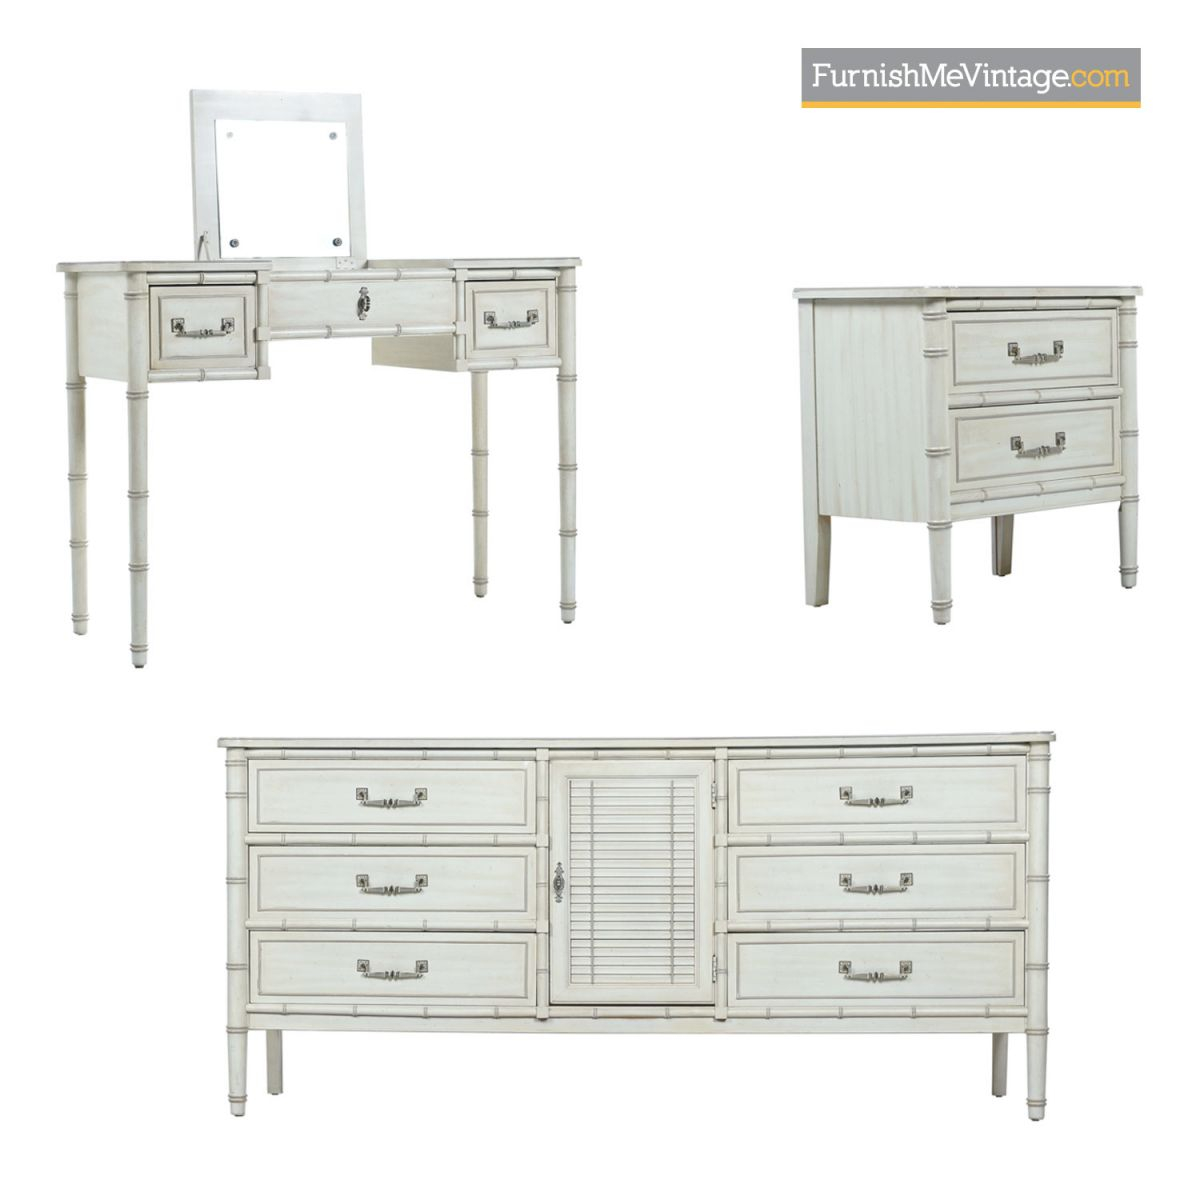 Faux Bamboo Bedroom Set - White Washed Dorothy Draper Style throughout Fresh Bedroom Set With Vanity